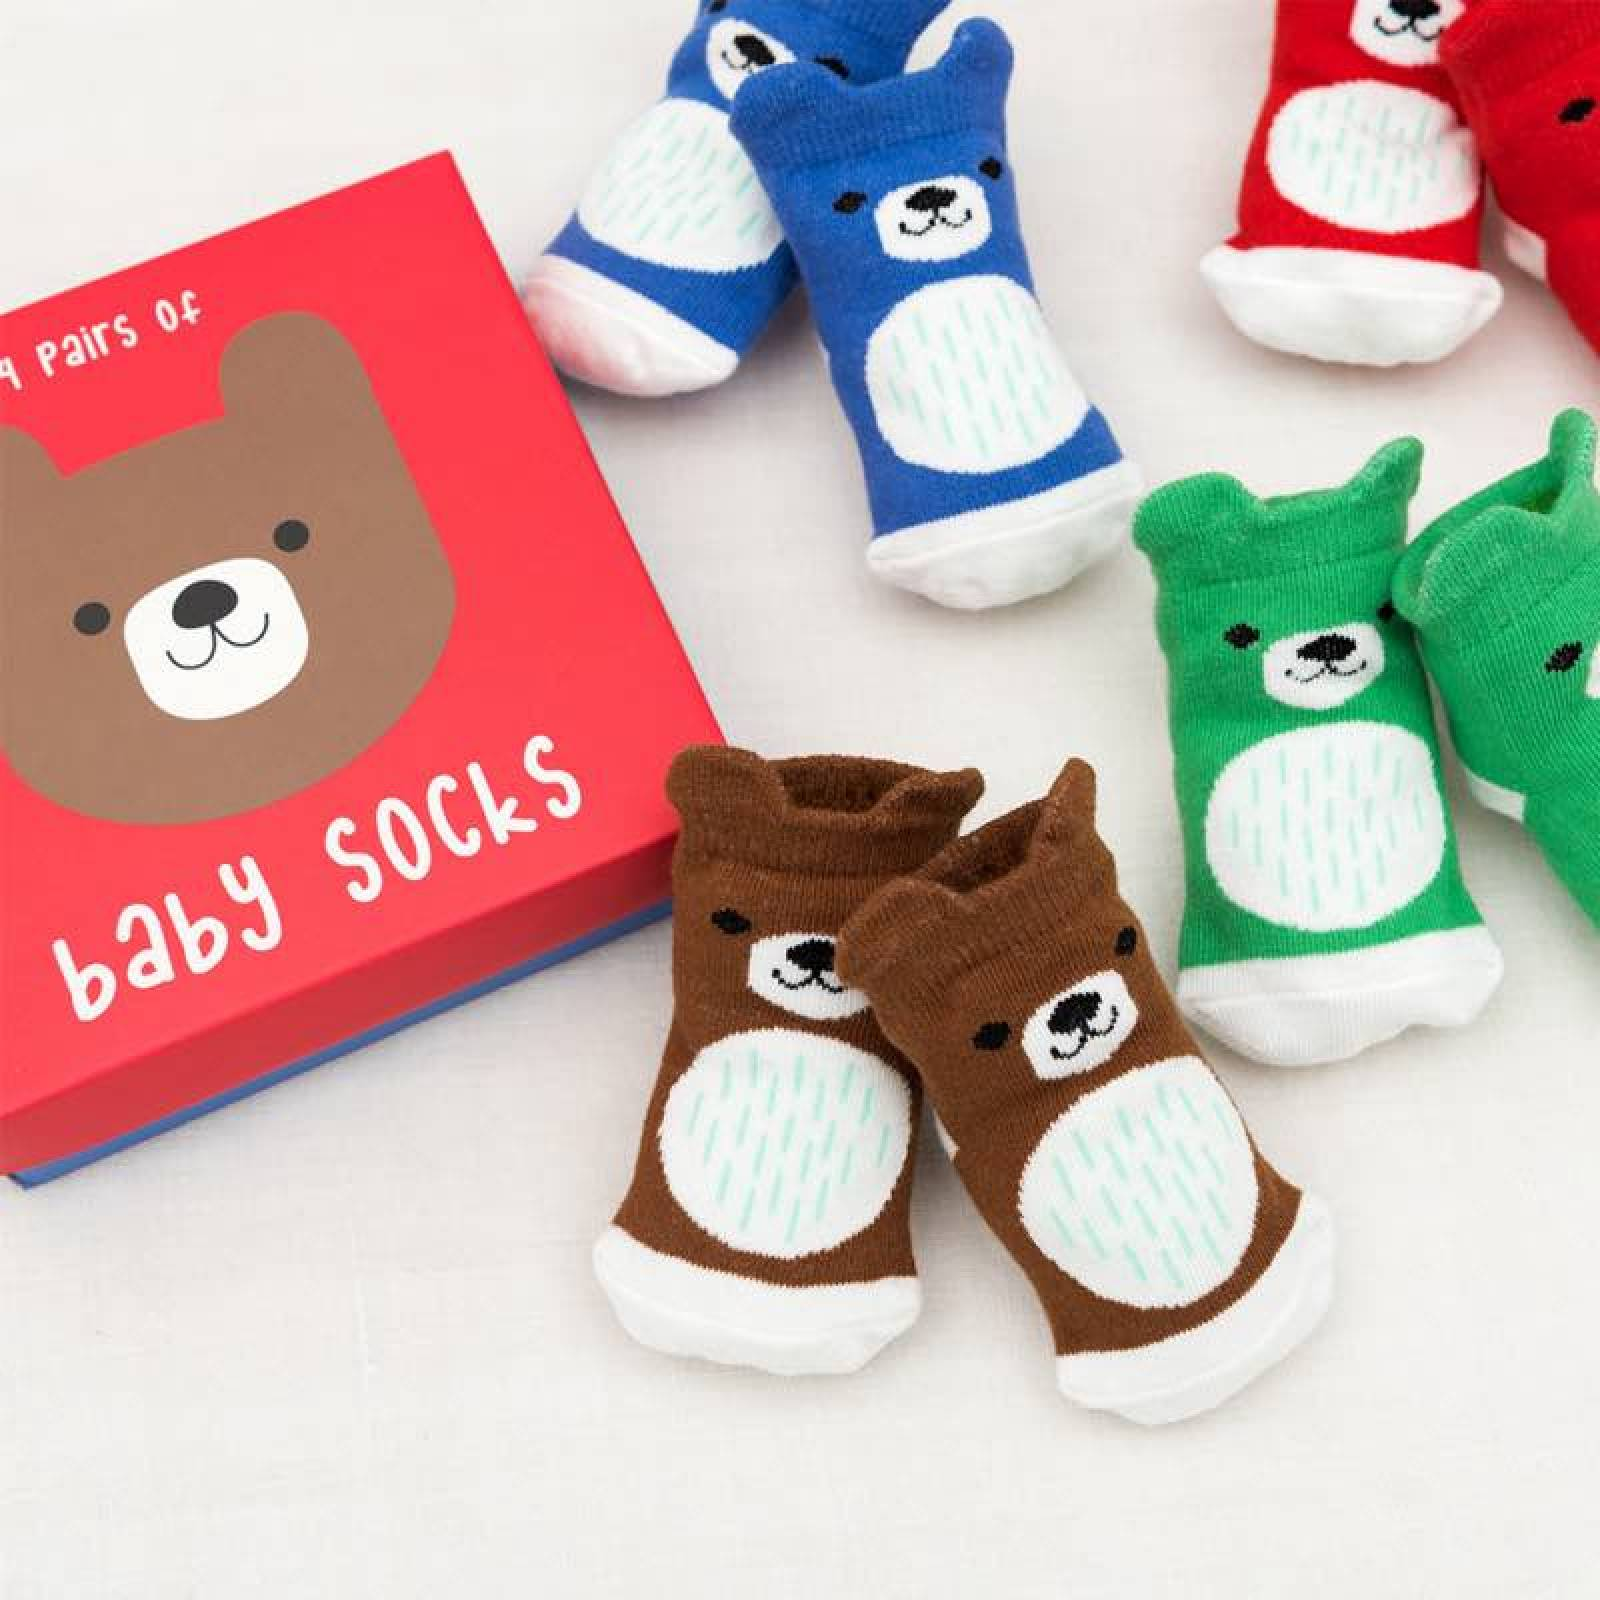 Bear Baby Socks Boxed Set of 4 Pairs